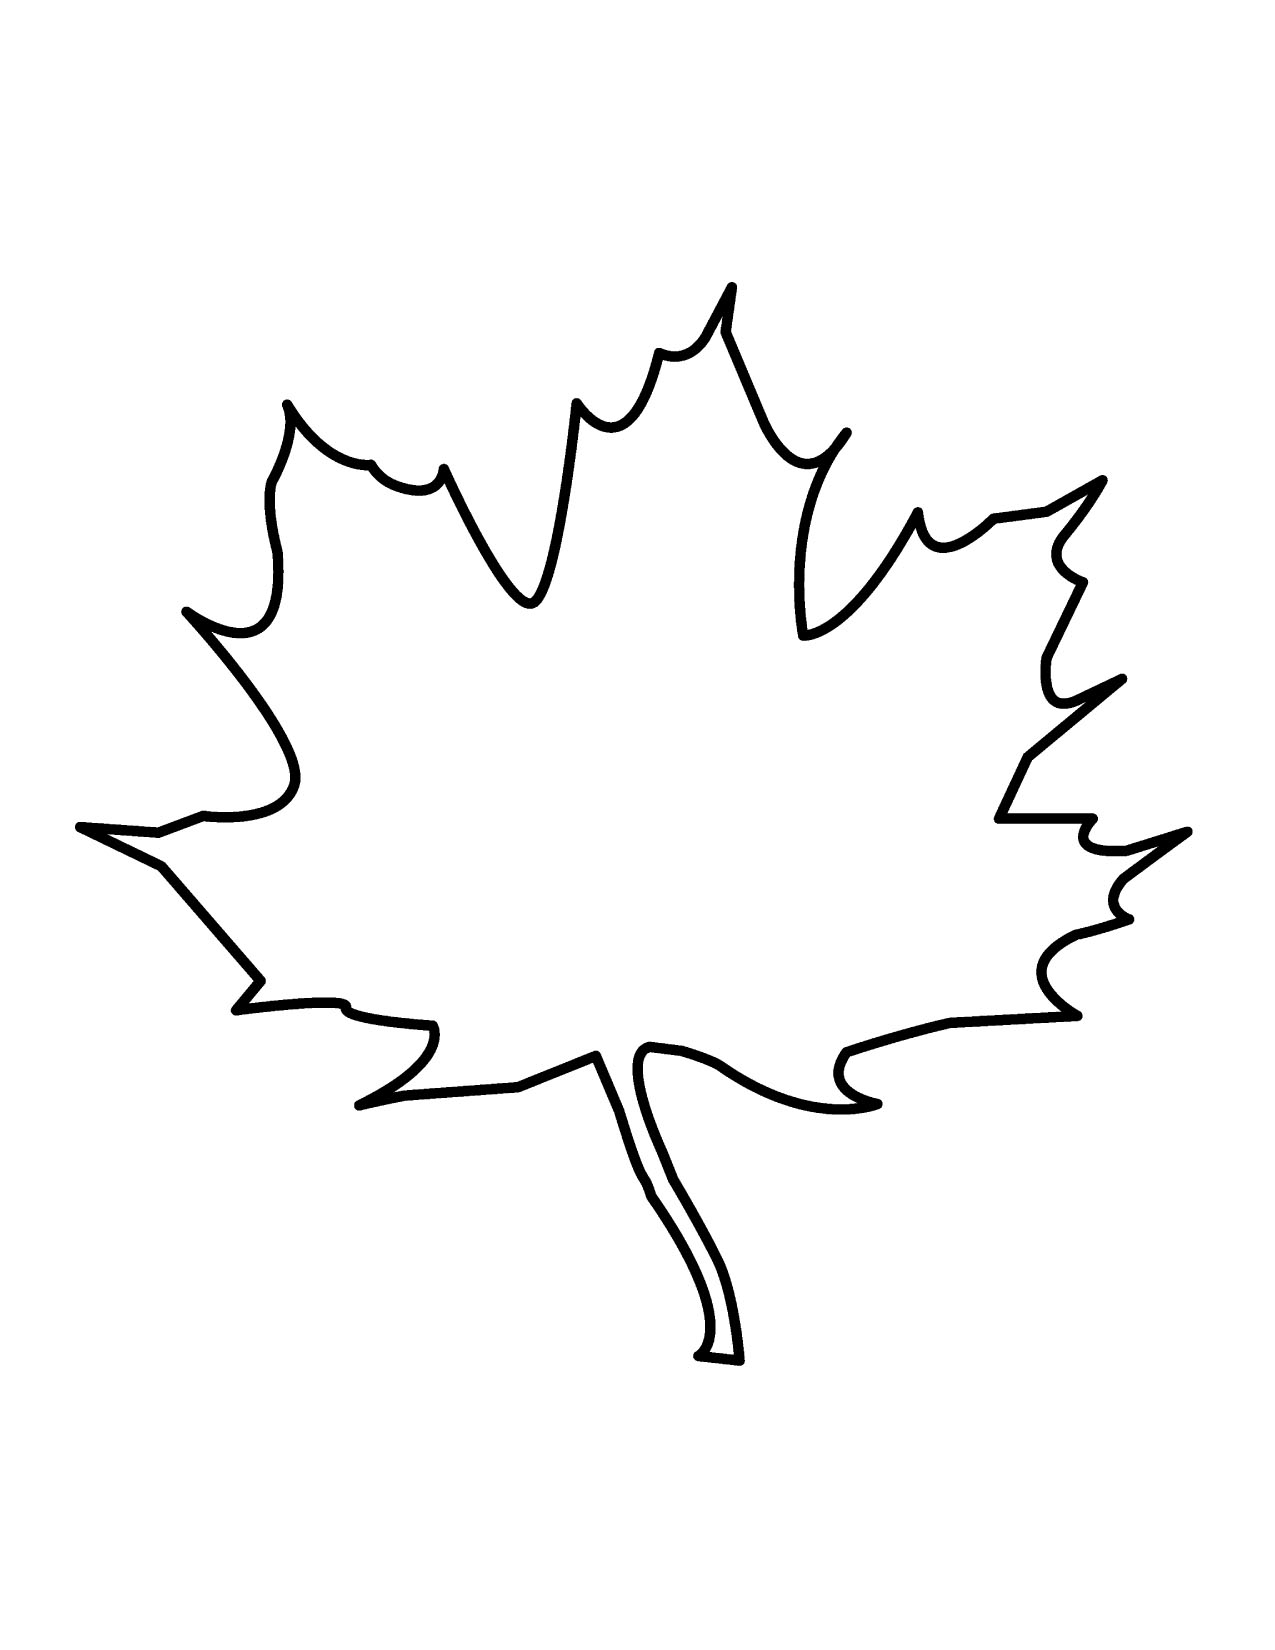 Leaf line clipart clipart black and white download Free Leaf Cliparts, Download Free Clip Art, Free Clip Art on Clipart ... clipart black and white download